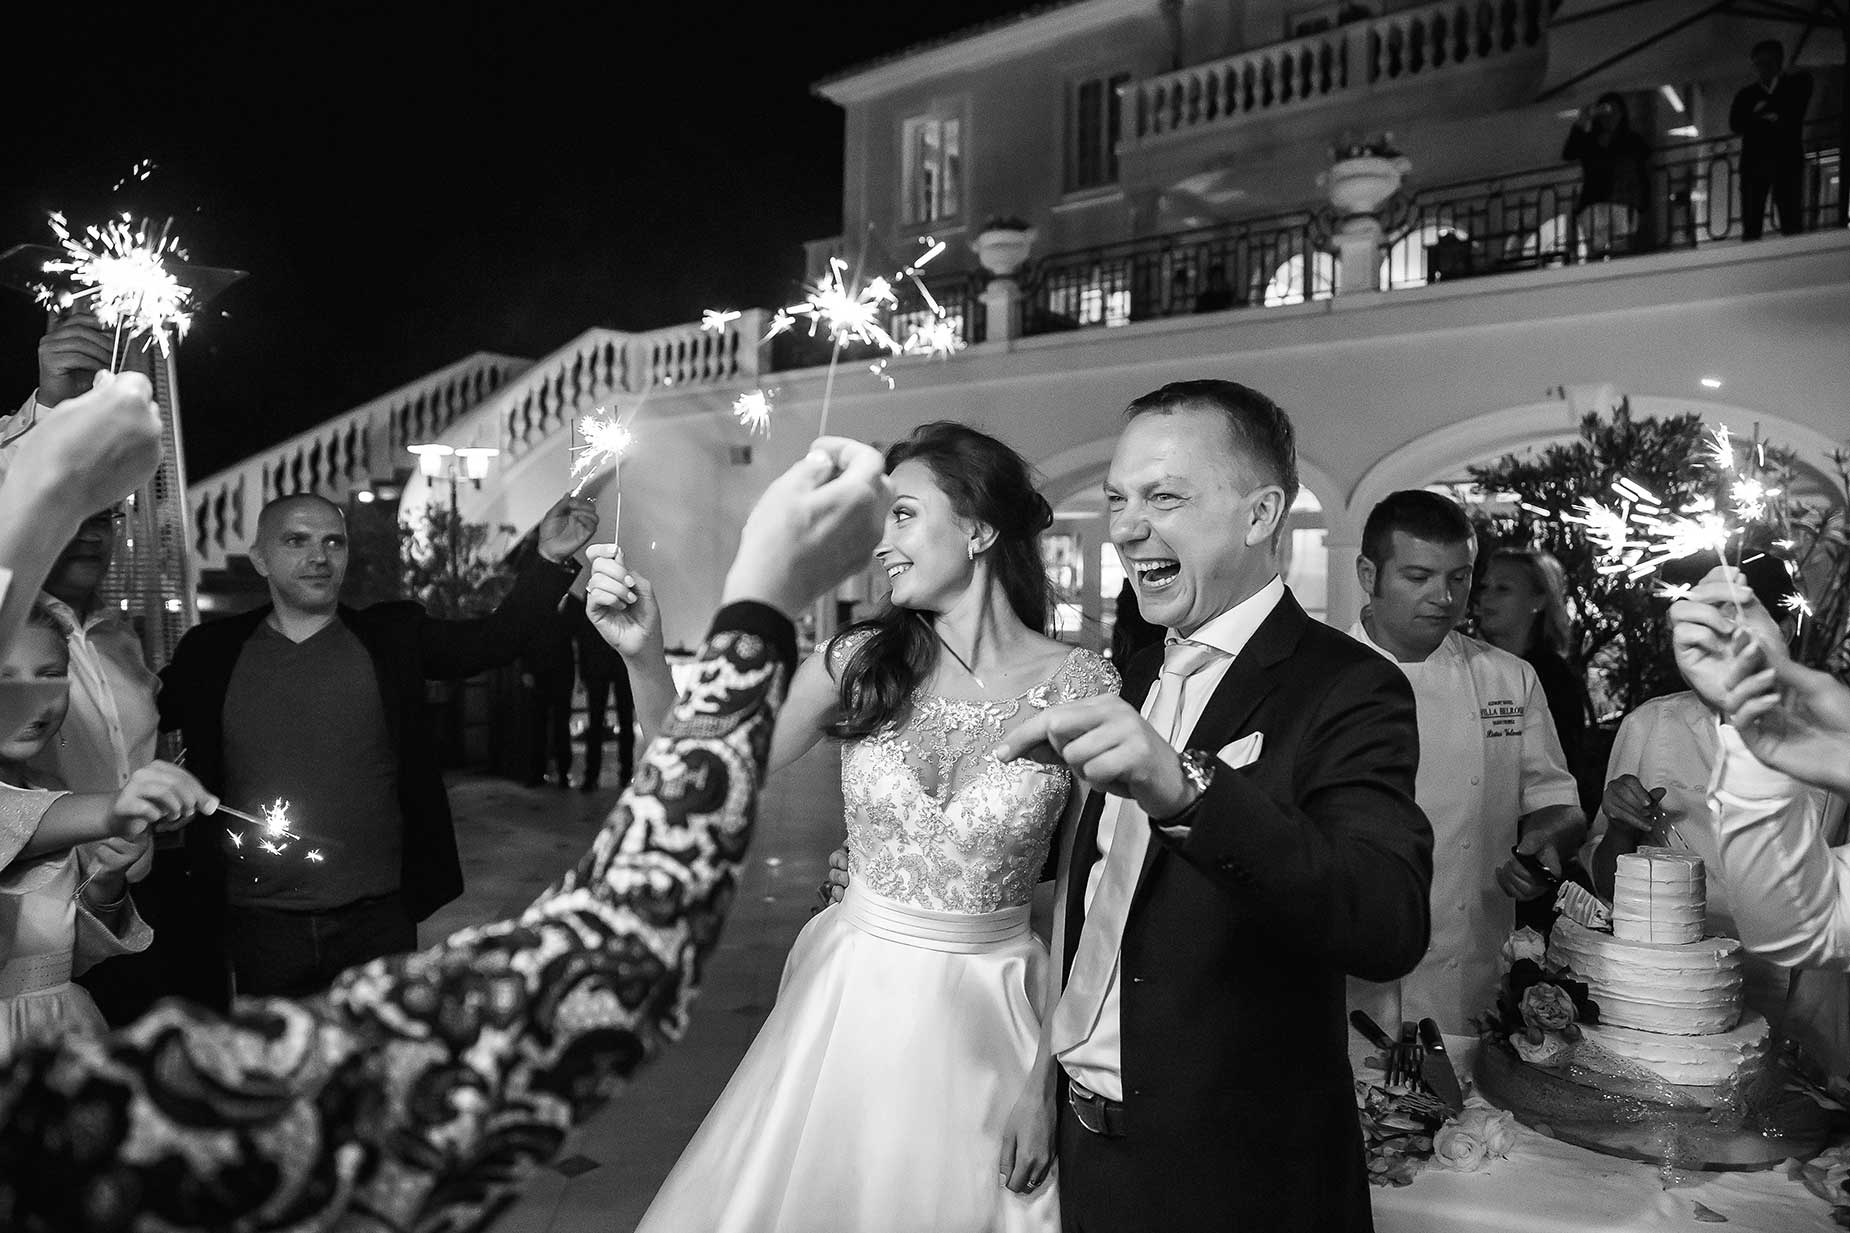 Saint Tropez wedding photos